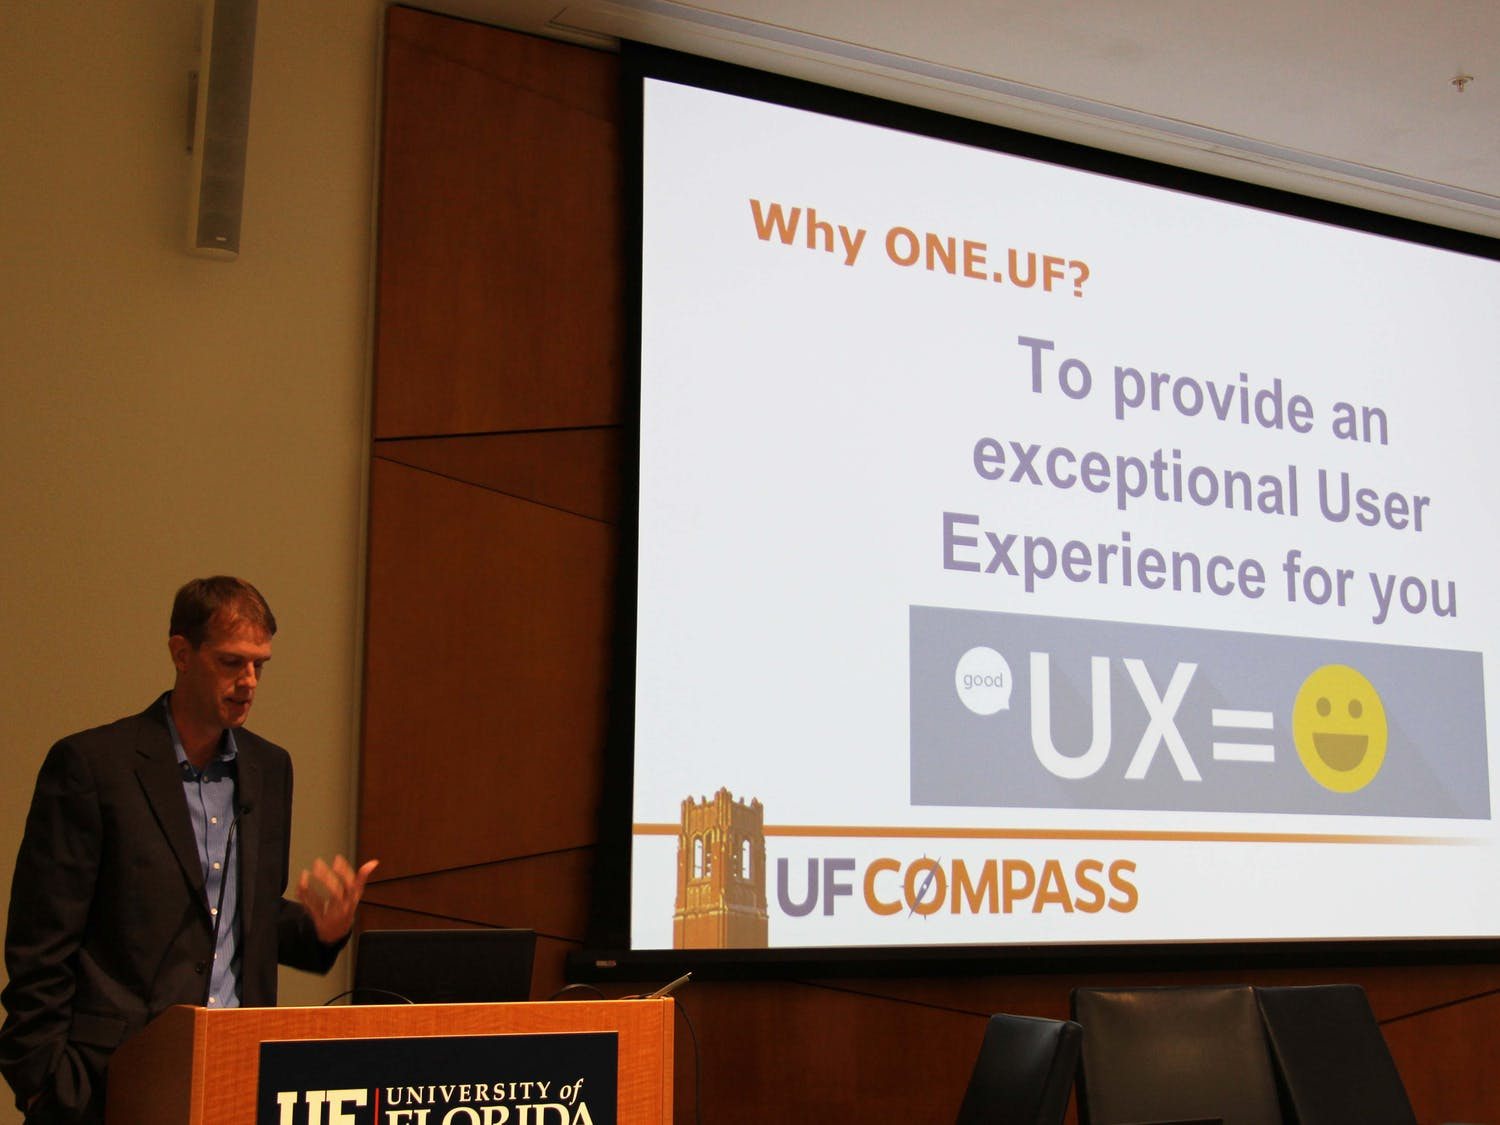 Jacob Prater, a UF Information Technology Application Developer Analyst, giving a presentation on ONE.UF.